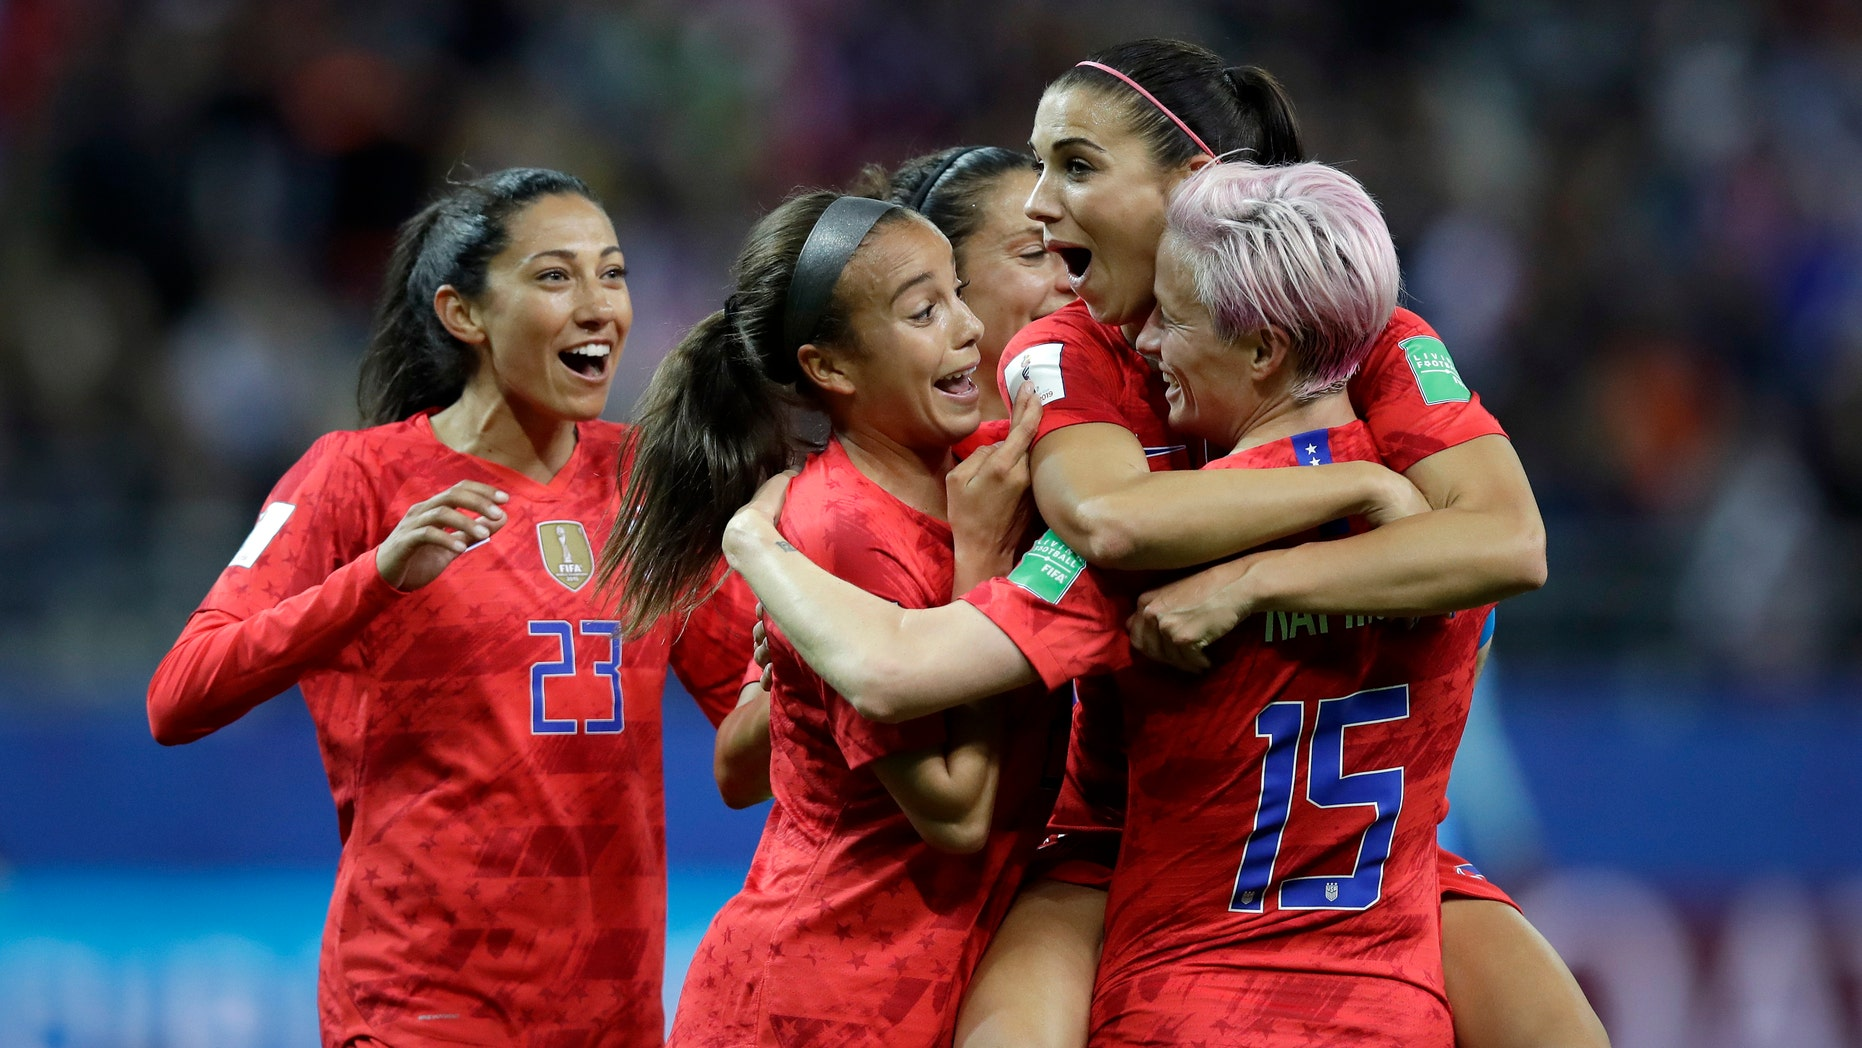 United States' Alex Morgan, second right, celebrates after scoring her side's 12th goal during the Women's World Cup Group F soccer match between United States and Thailand at the Stade Auguste-Delaune in Reims, France, Tuesday, June 11, 2019. Morgan scored five goals during the match. (AP Photo/Alessandra Tarantino)